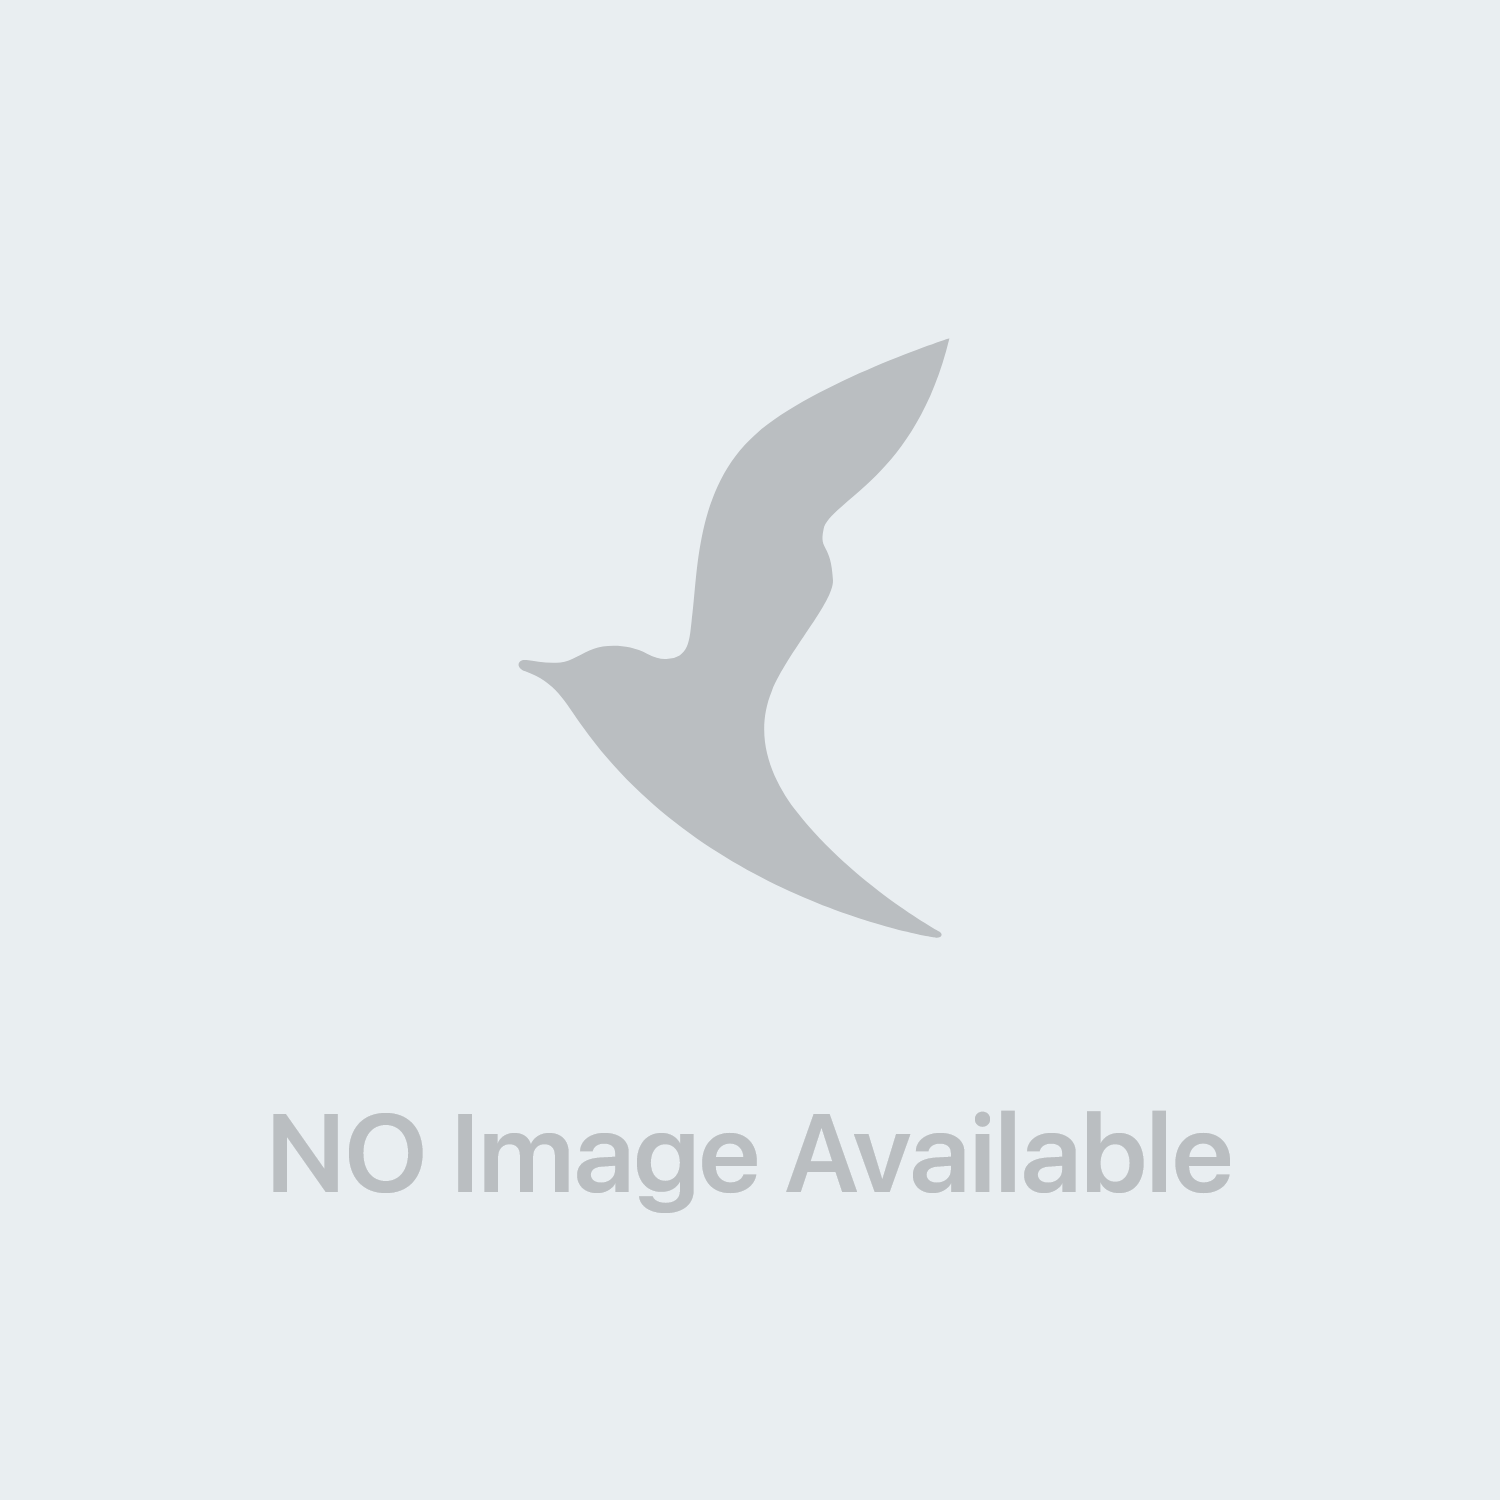 Amedial Plus Integratore Ossa Cartilagini Collagene 20 Bustine